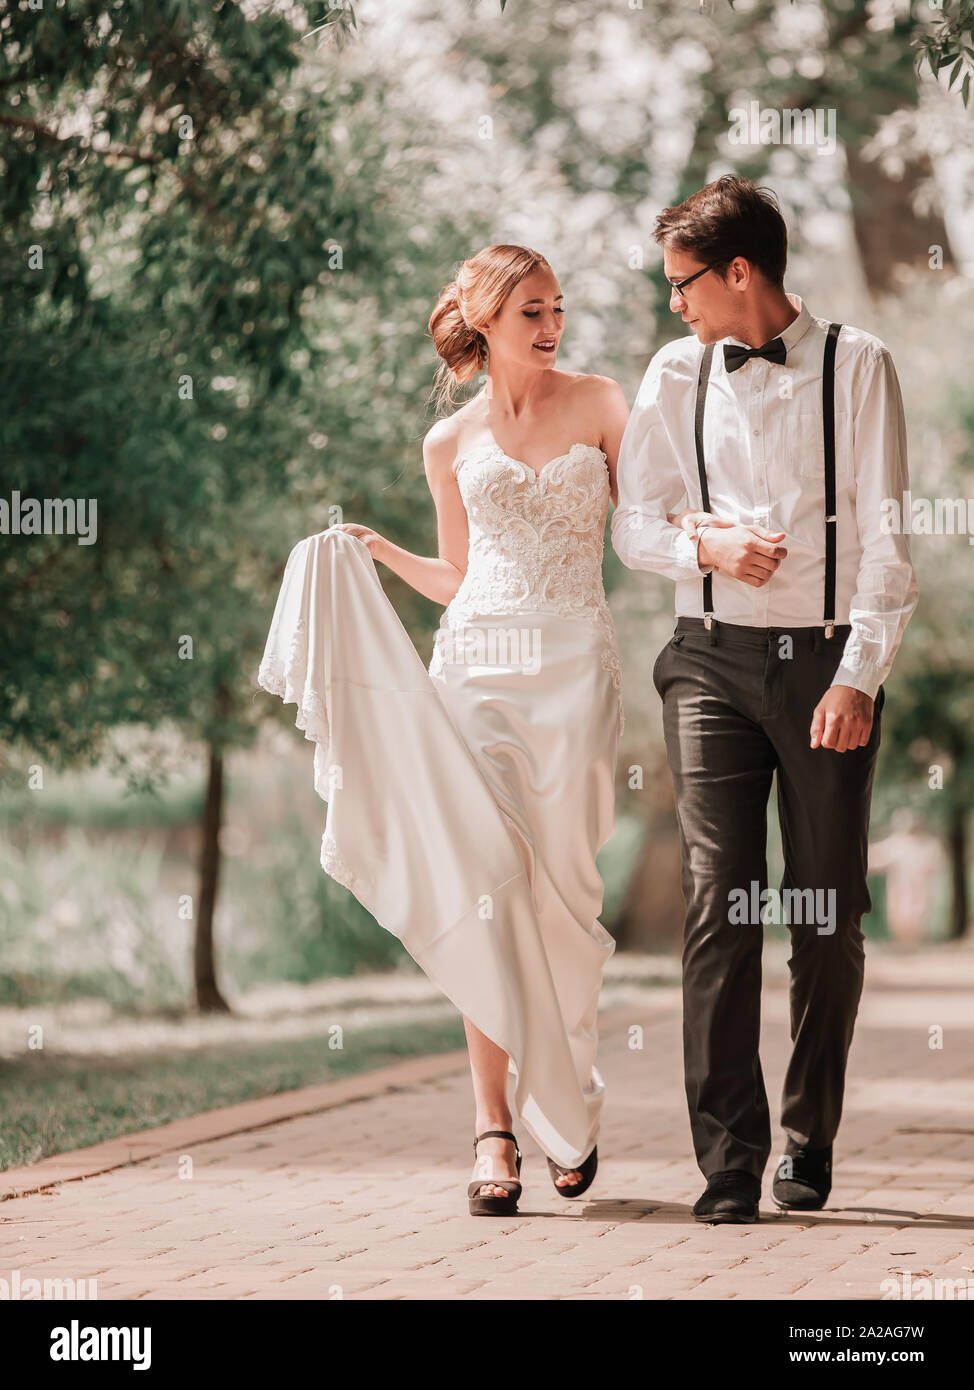 beautiful couple in love on a walk in the city Park. Stock Photo